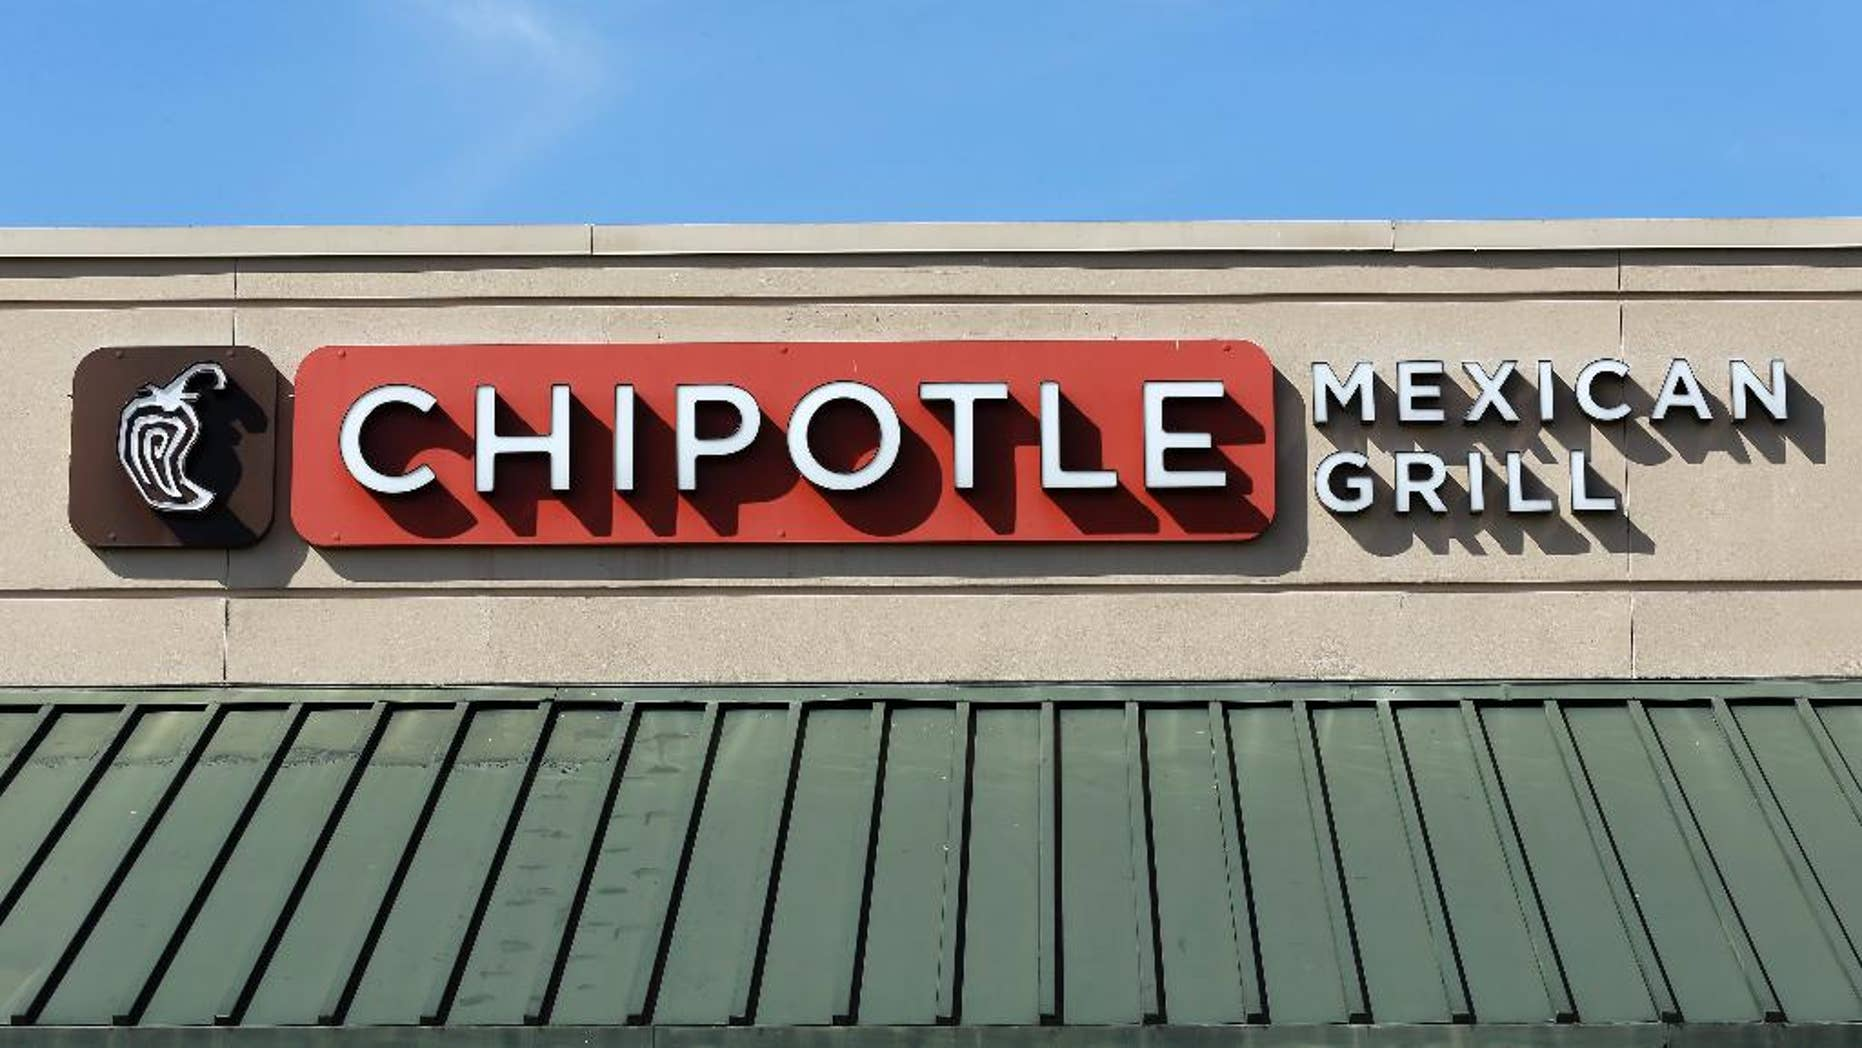 This Monday, Feb. 8, 2016, photo shows the sign over a Chipotle Mexican Grill in Brandon, Fla. The Chipotle marketing executive leading the chain's efforts to rebound after an E. coli outbreak was arrested Tuesday, July 5, 2016, on multiple counts of cocaine possession. (AP Photo/Chris O'Meara)